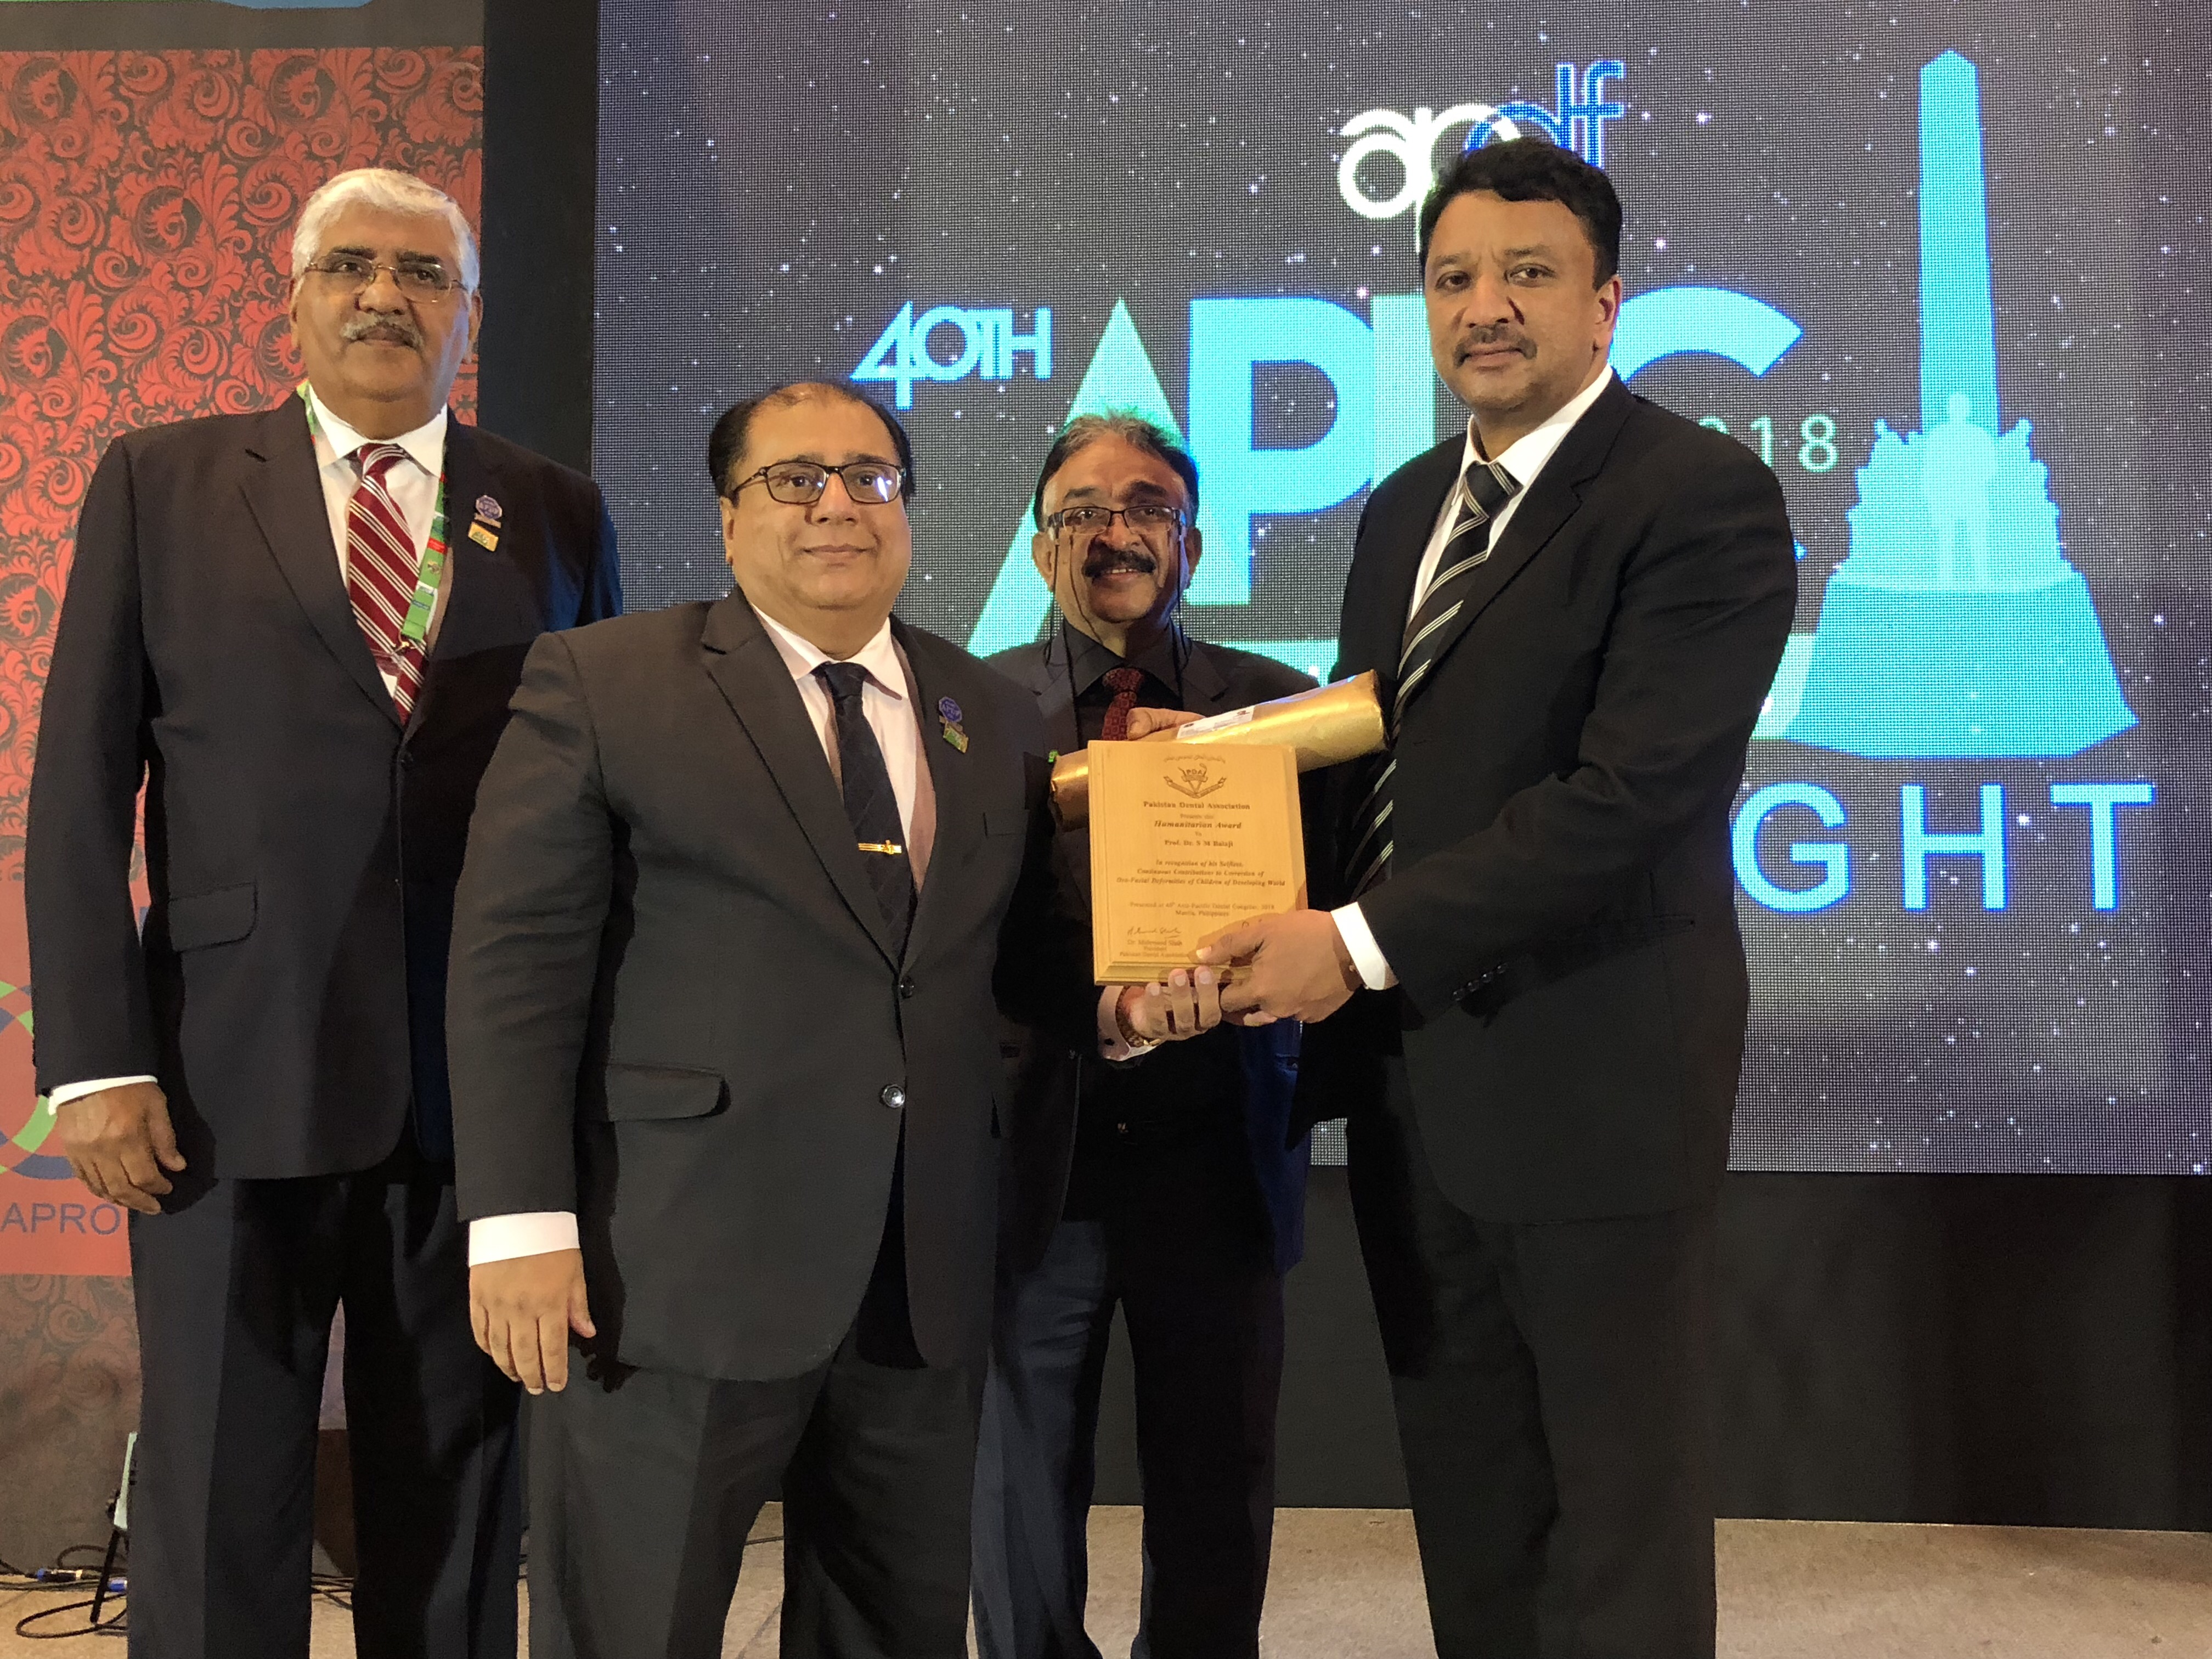 Prof SM Balaji with Dr Arain, Dr Shah and Dr Khan at the awards ceremony